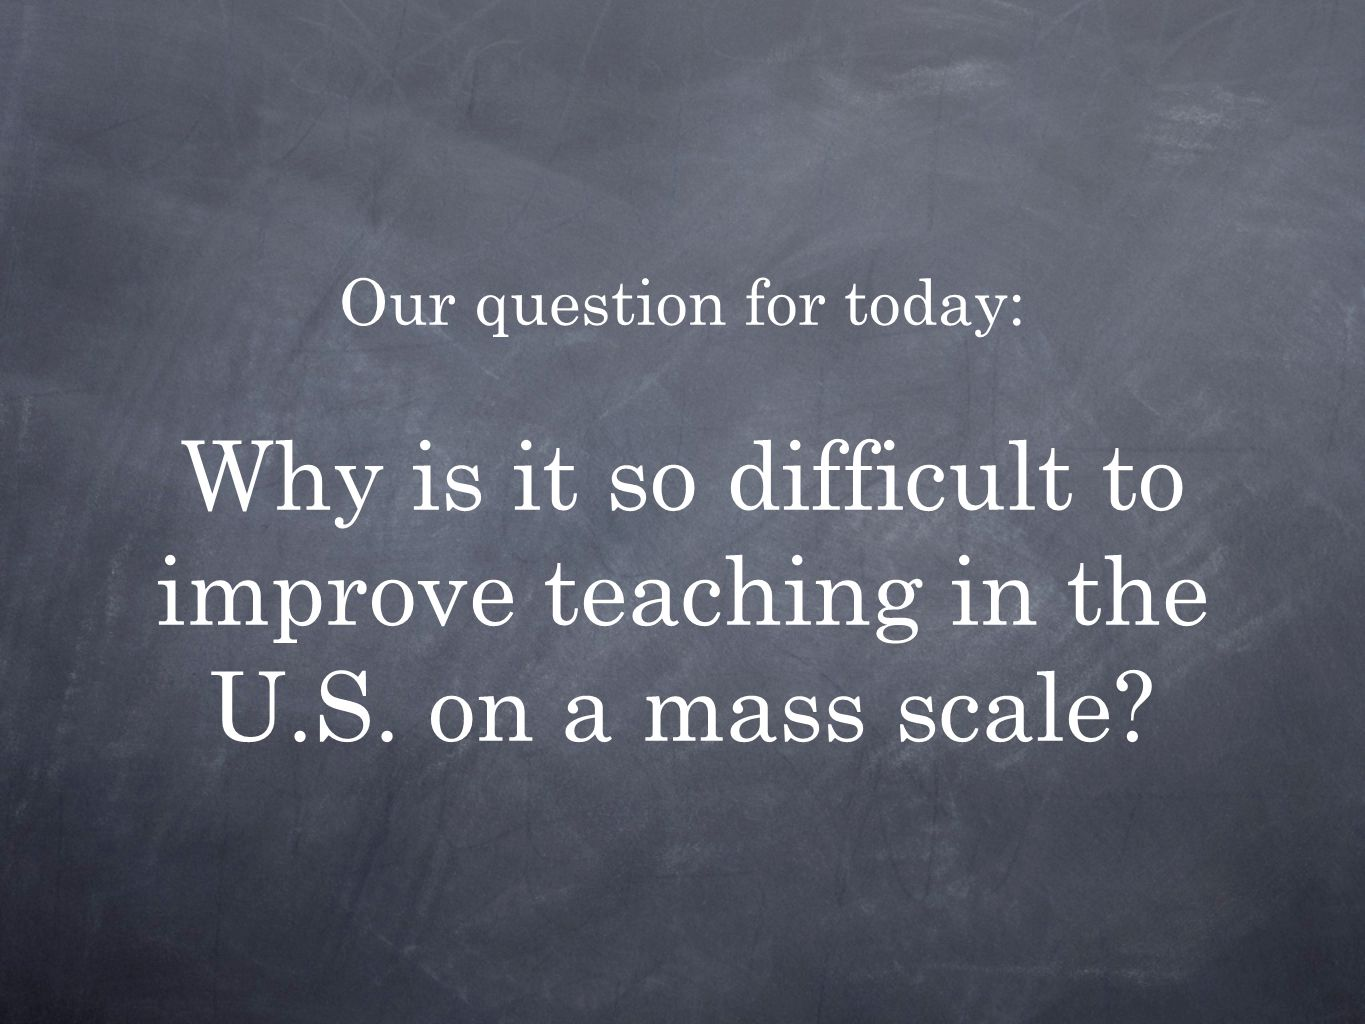 Our question for today: Why is it so difficult to improve teaching in the U.S. on a mass scale